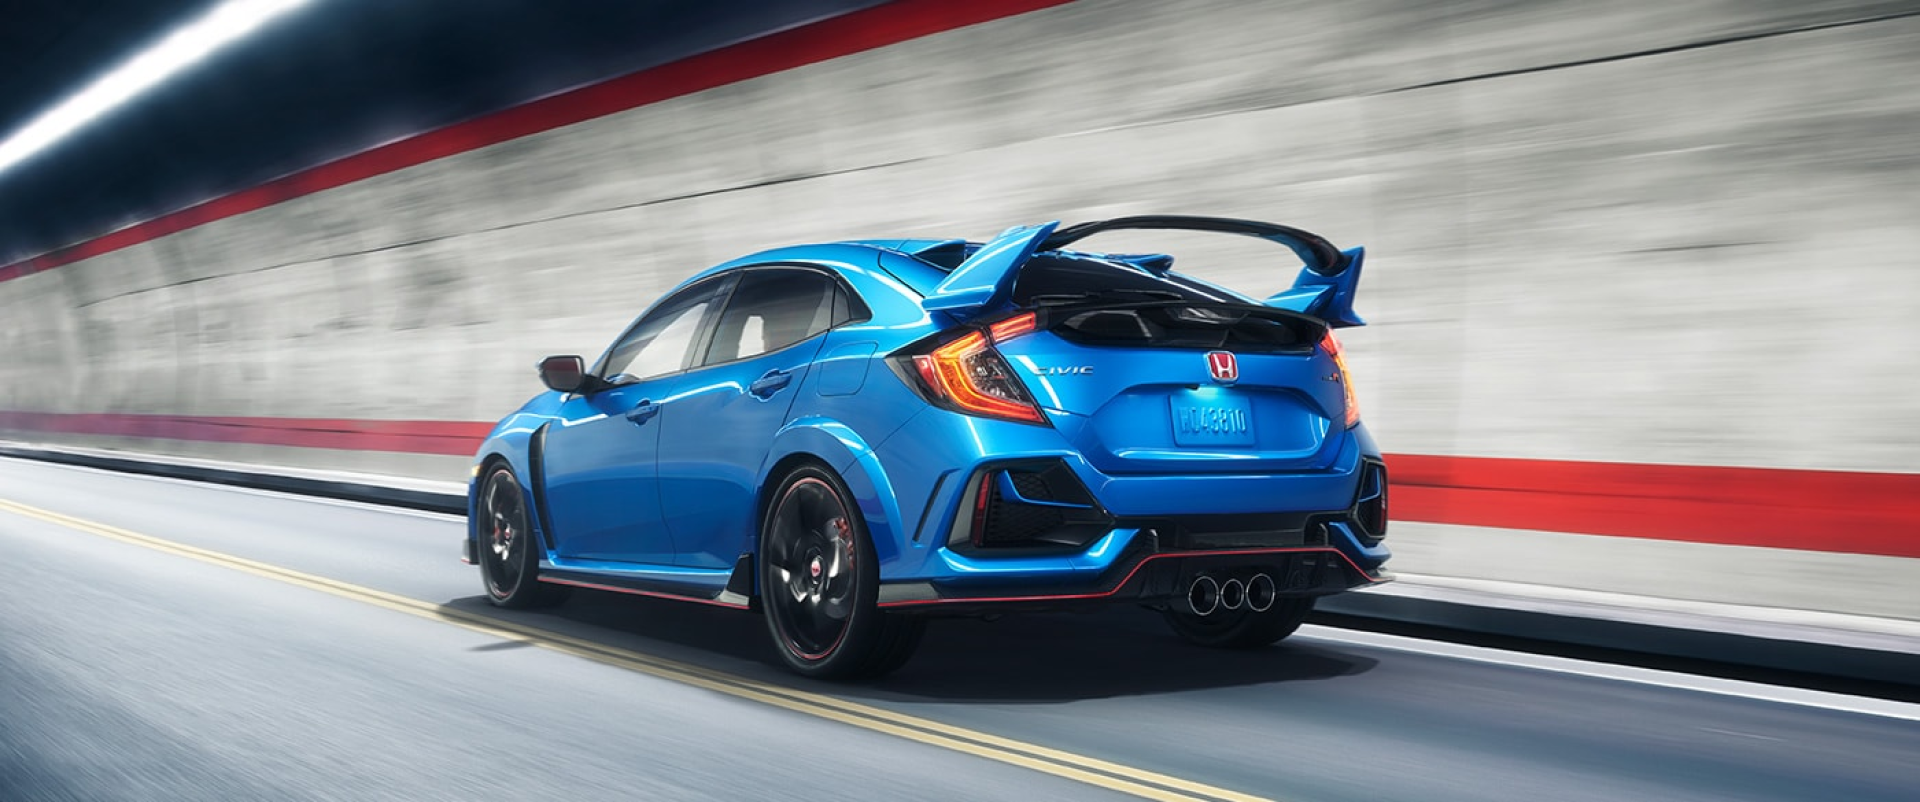 Honda_Civic_Type_R_Blue_Driving_Rear_View